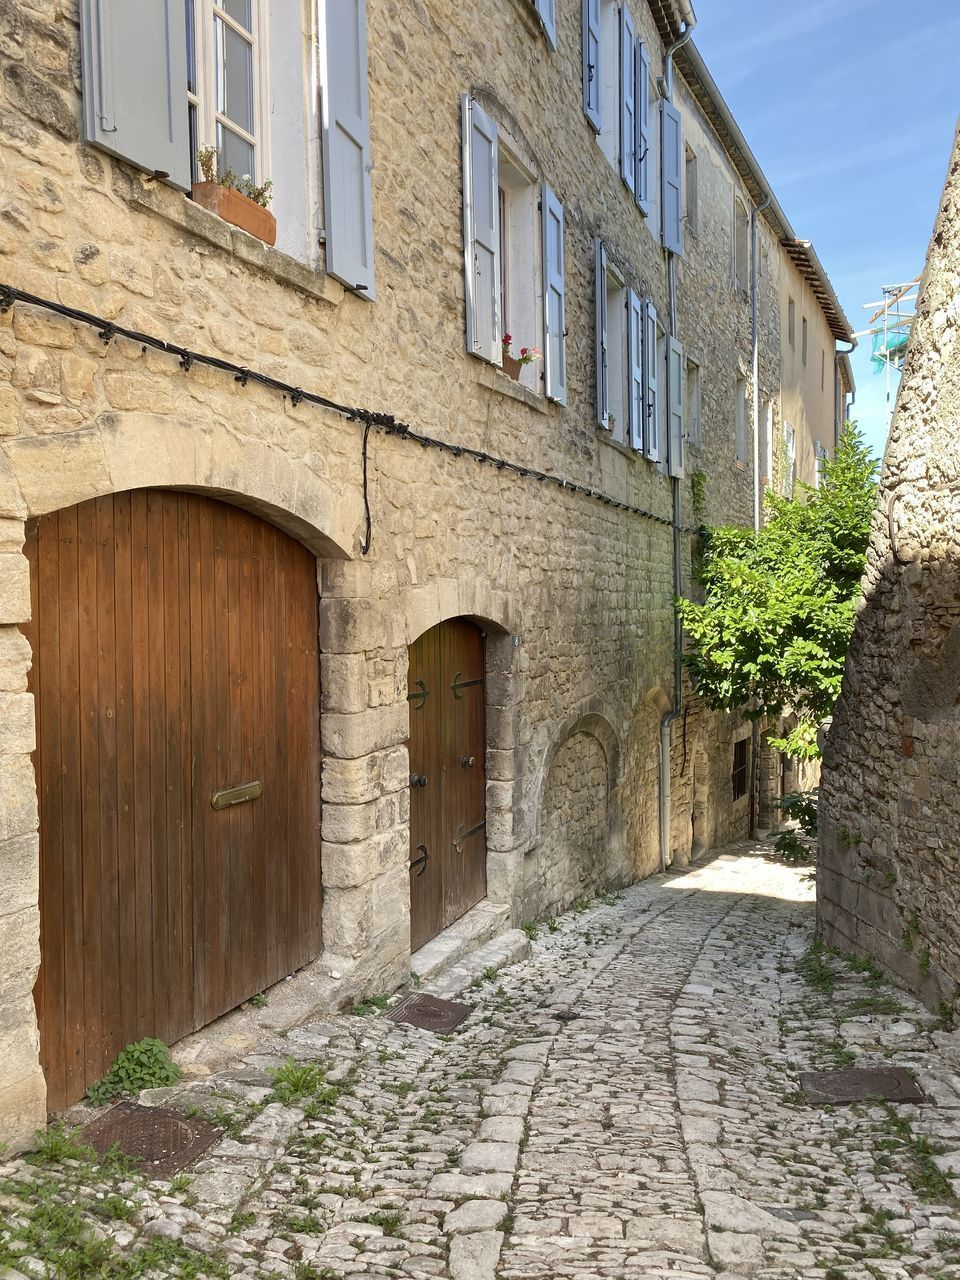 architecture, built structure, building exterior, building, window, day, nature, the way forward, residential district, direction, no people, city, entrance, door, footpath, house, street, plant, old, cobblestone, outdoors, stone wall, alley